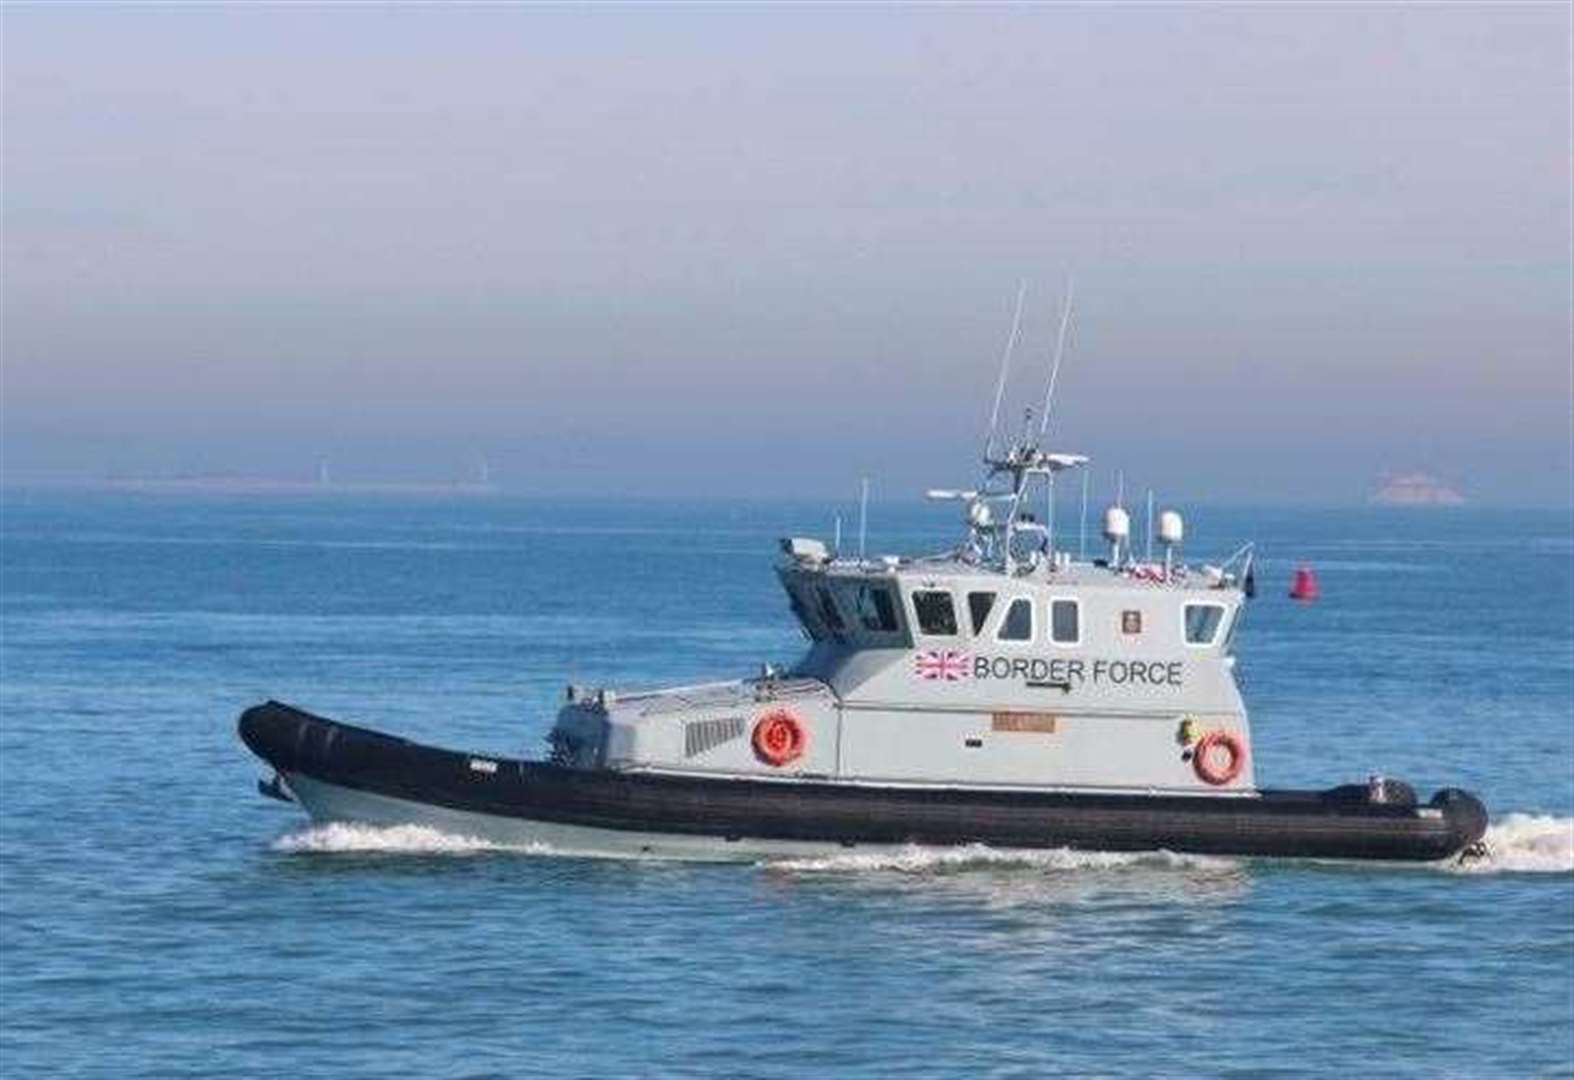 More than 60 migrants rescued from Channel